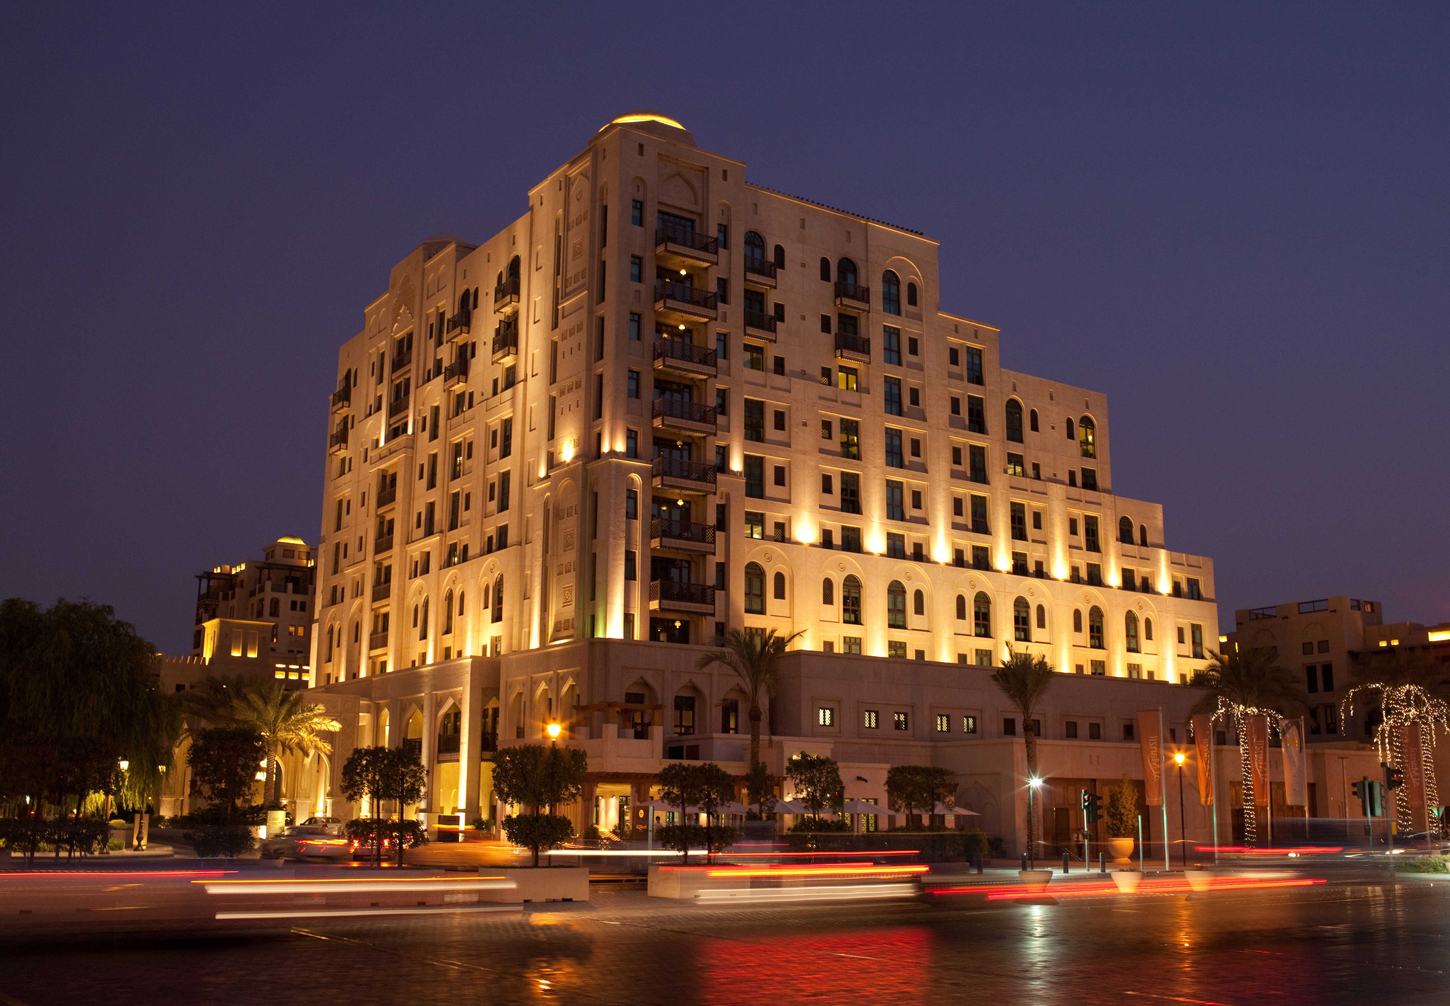 Al manzil hotel dubai allt om dubai for All hotels in dubai